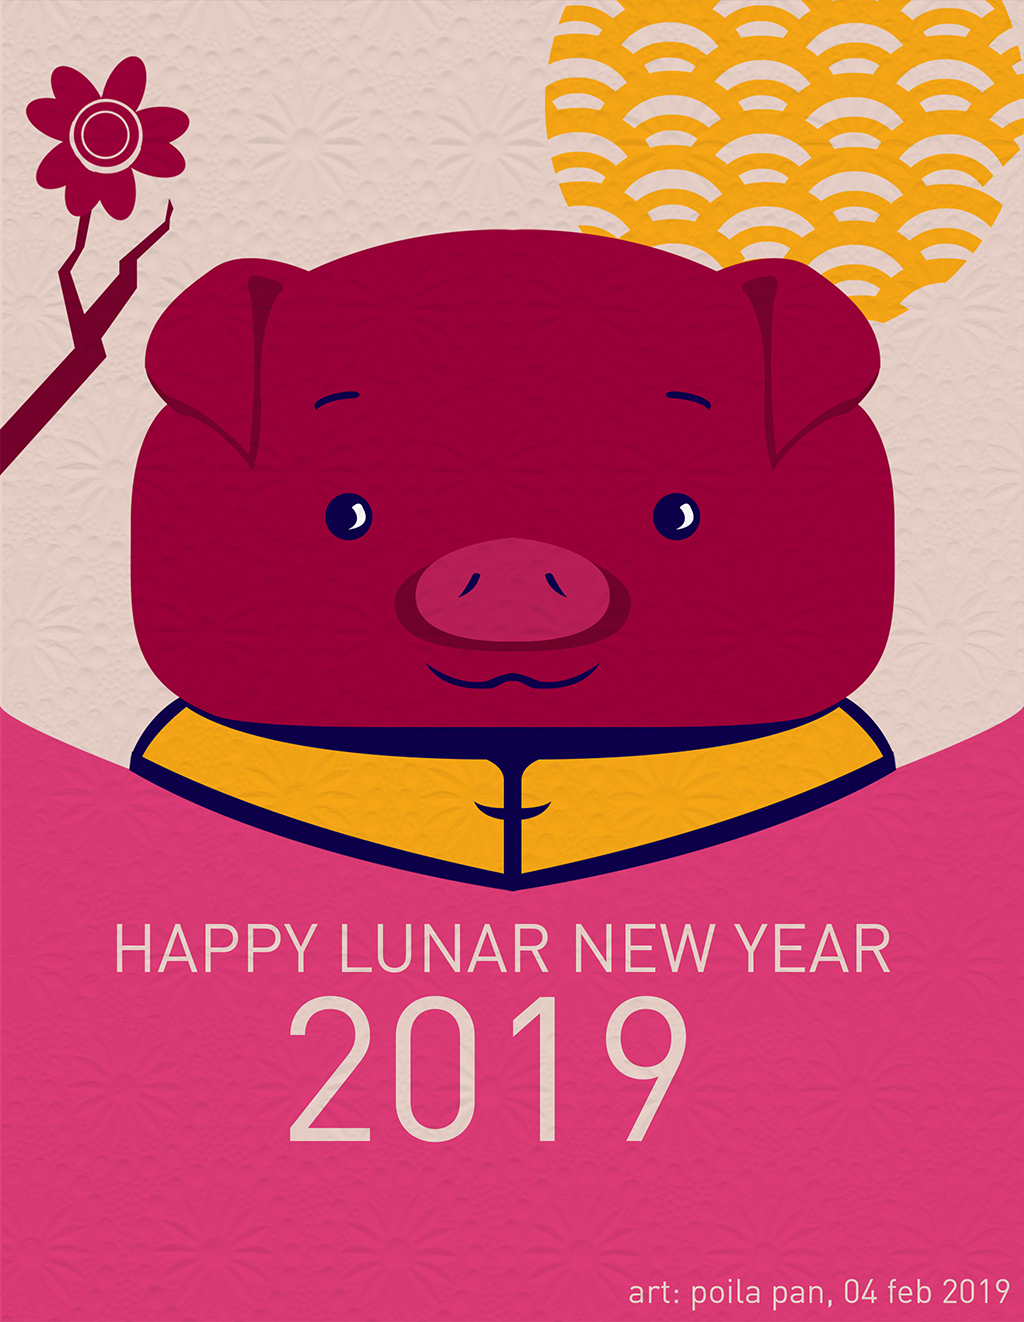 Most recent image: Lunar New Year 2019